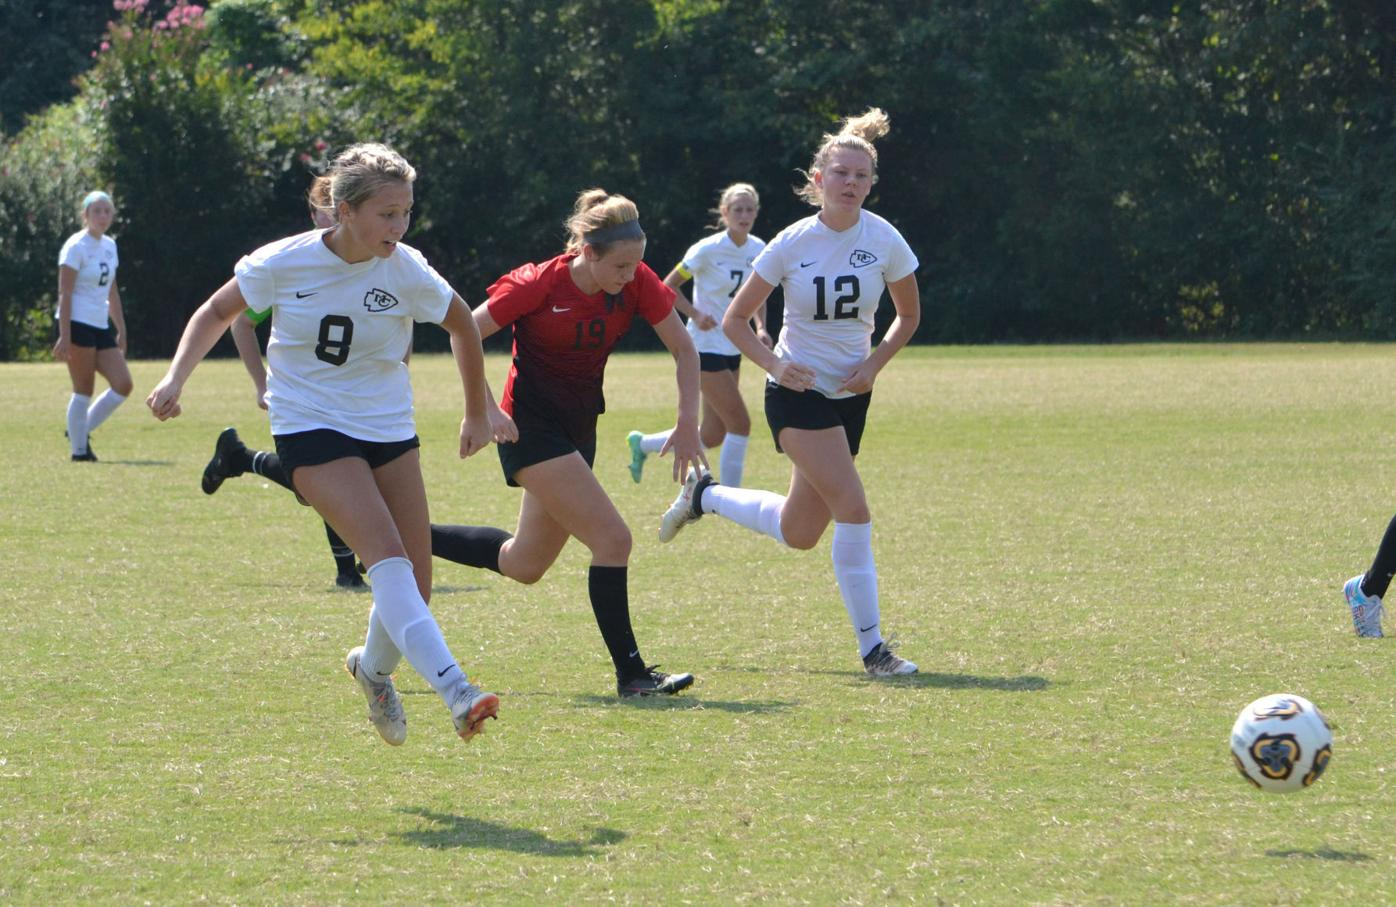 MAIN – McMinn's Kylee Hockman and Lexi Lawson vs. Maryville